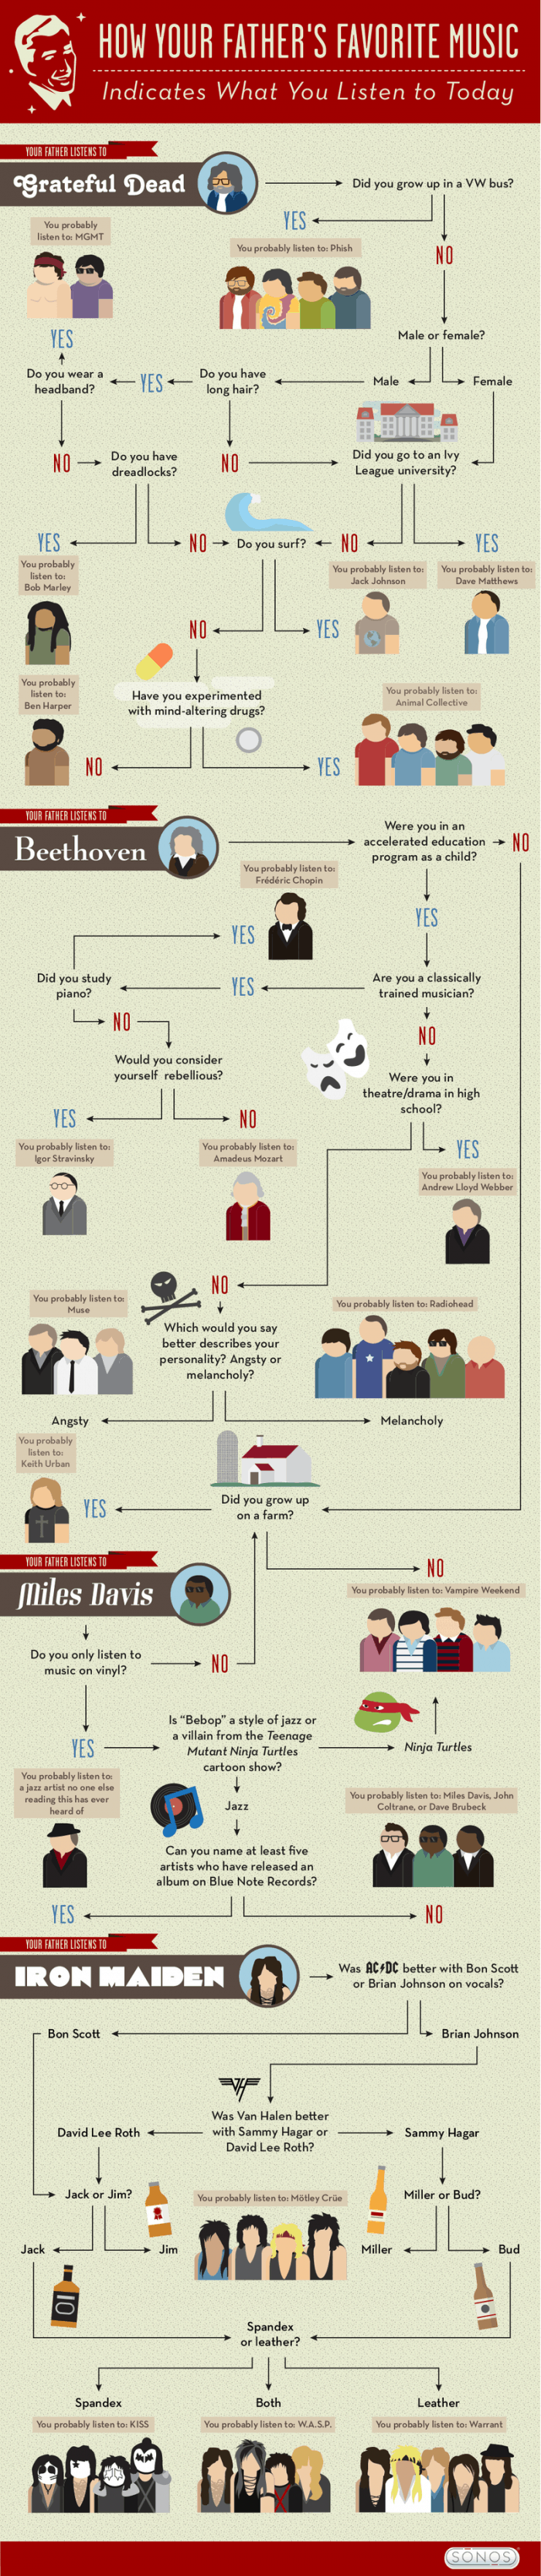 How Your Father's Favorite Music Infographic